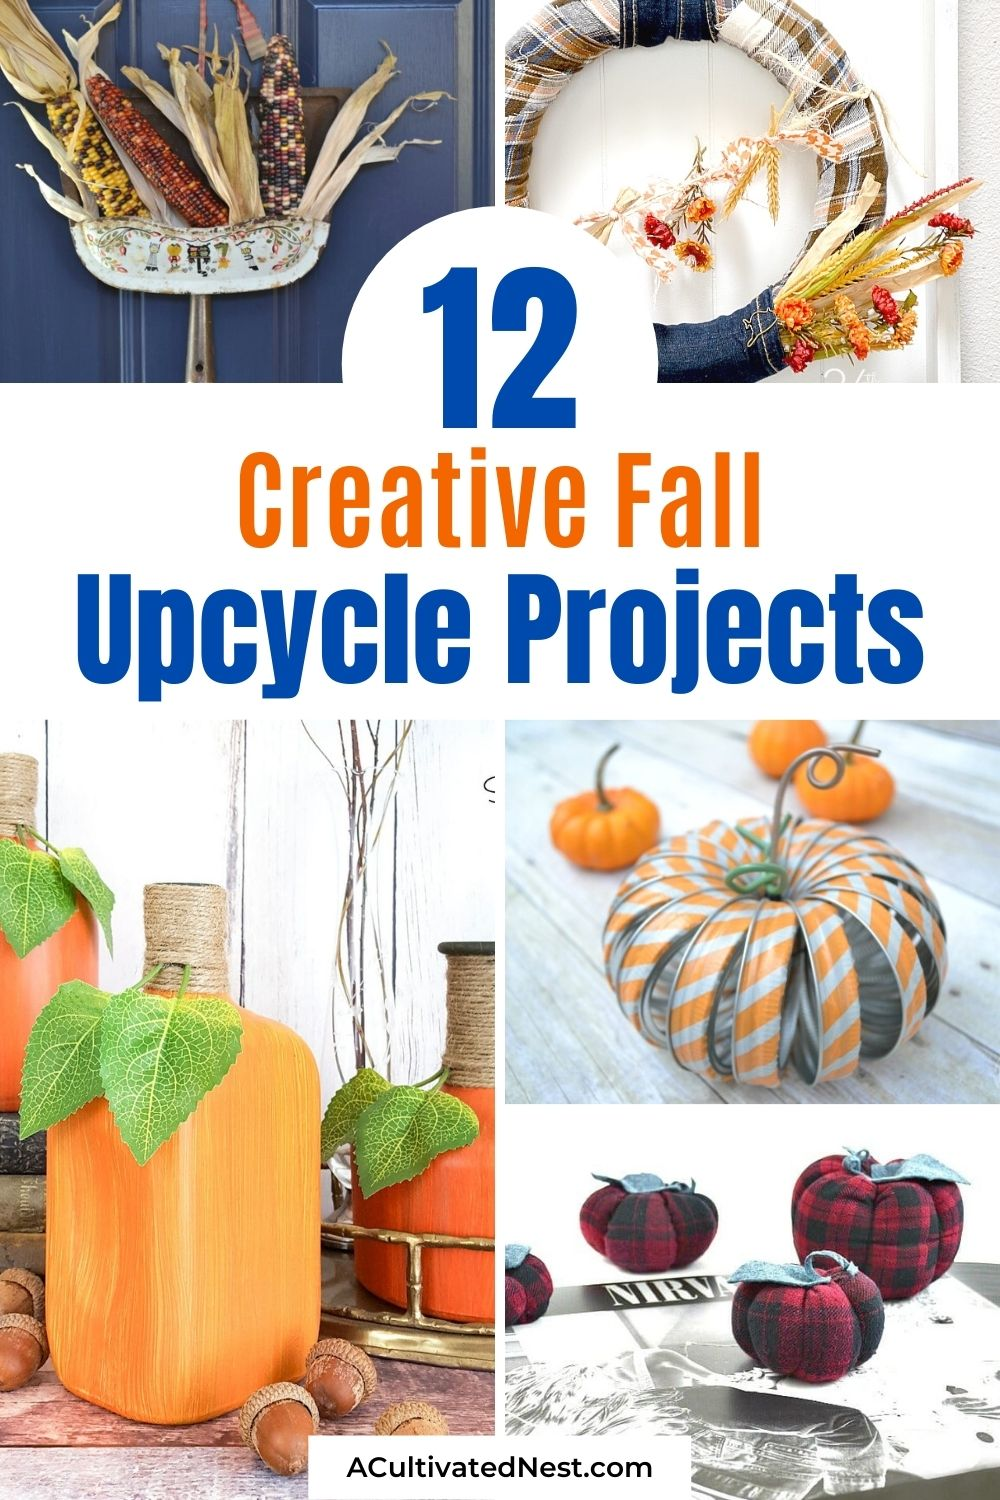 12 Creative Fall Upcycle Projects- A great way to decorate for autumn on a budget is by upcycling materials you would normally throw away! These creative fall upcycle projects are a creative way to add charm to any space! | fall decorating on a budget, repurposing, repurposed DIY décor, recycled décor, #diy #crafts #fallCrafts #upcycling #ACultivatedNest